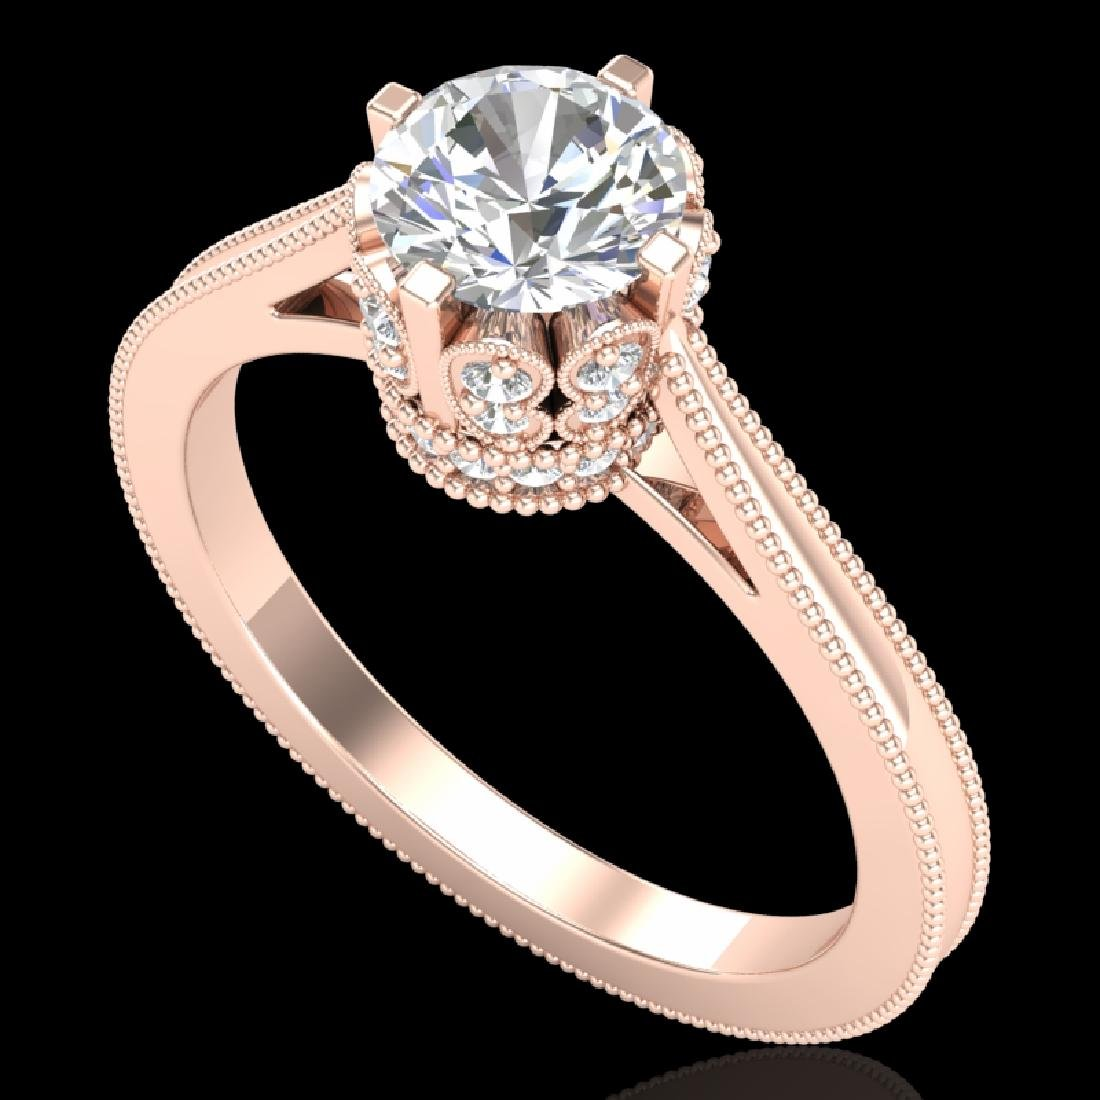 1.14 CTW VS/SI Diamond Solitaire Art Deco Ring 18K Rose